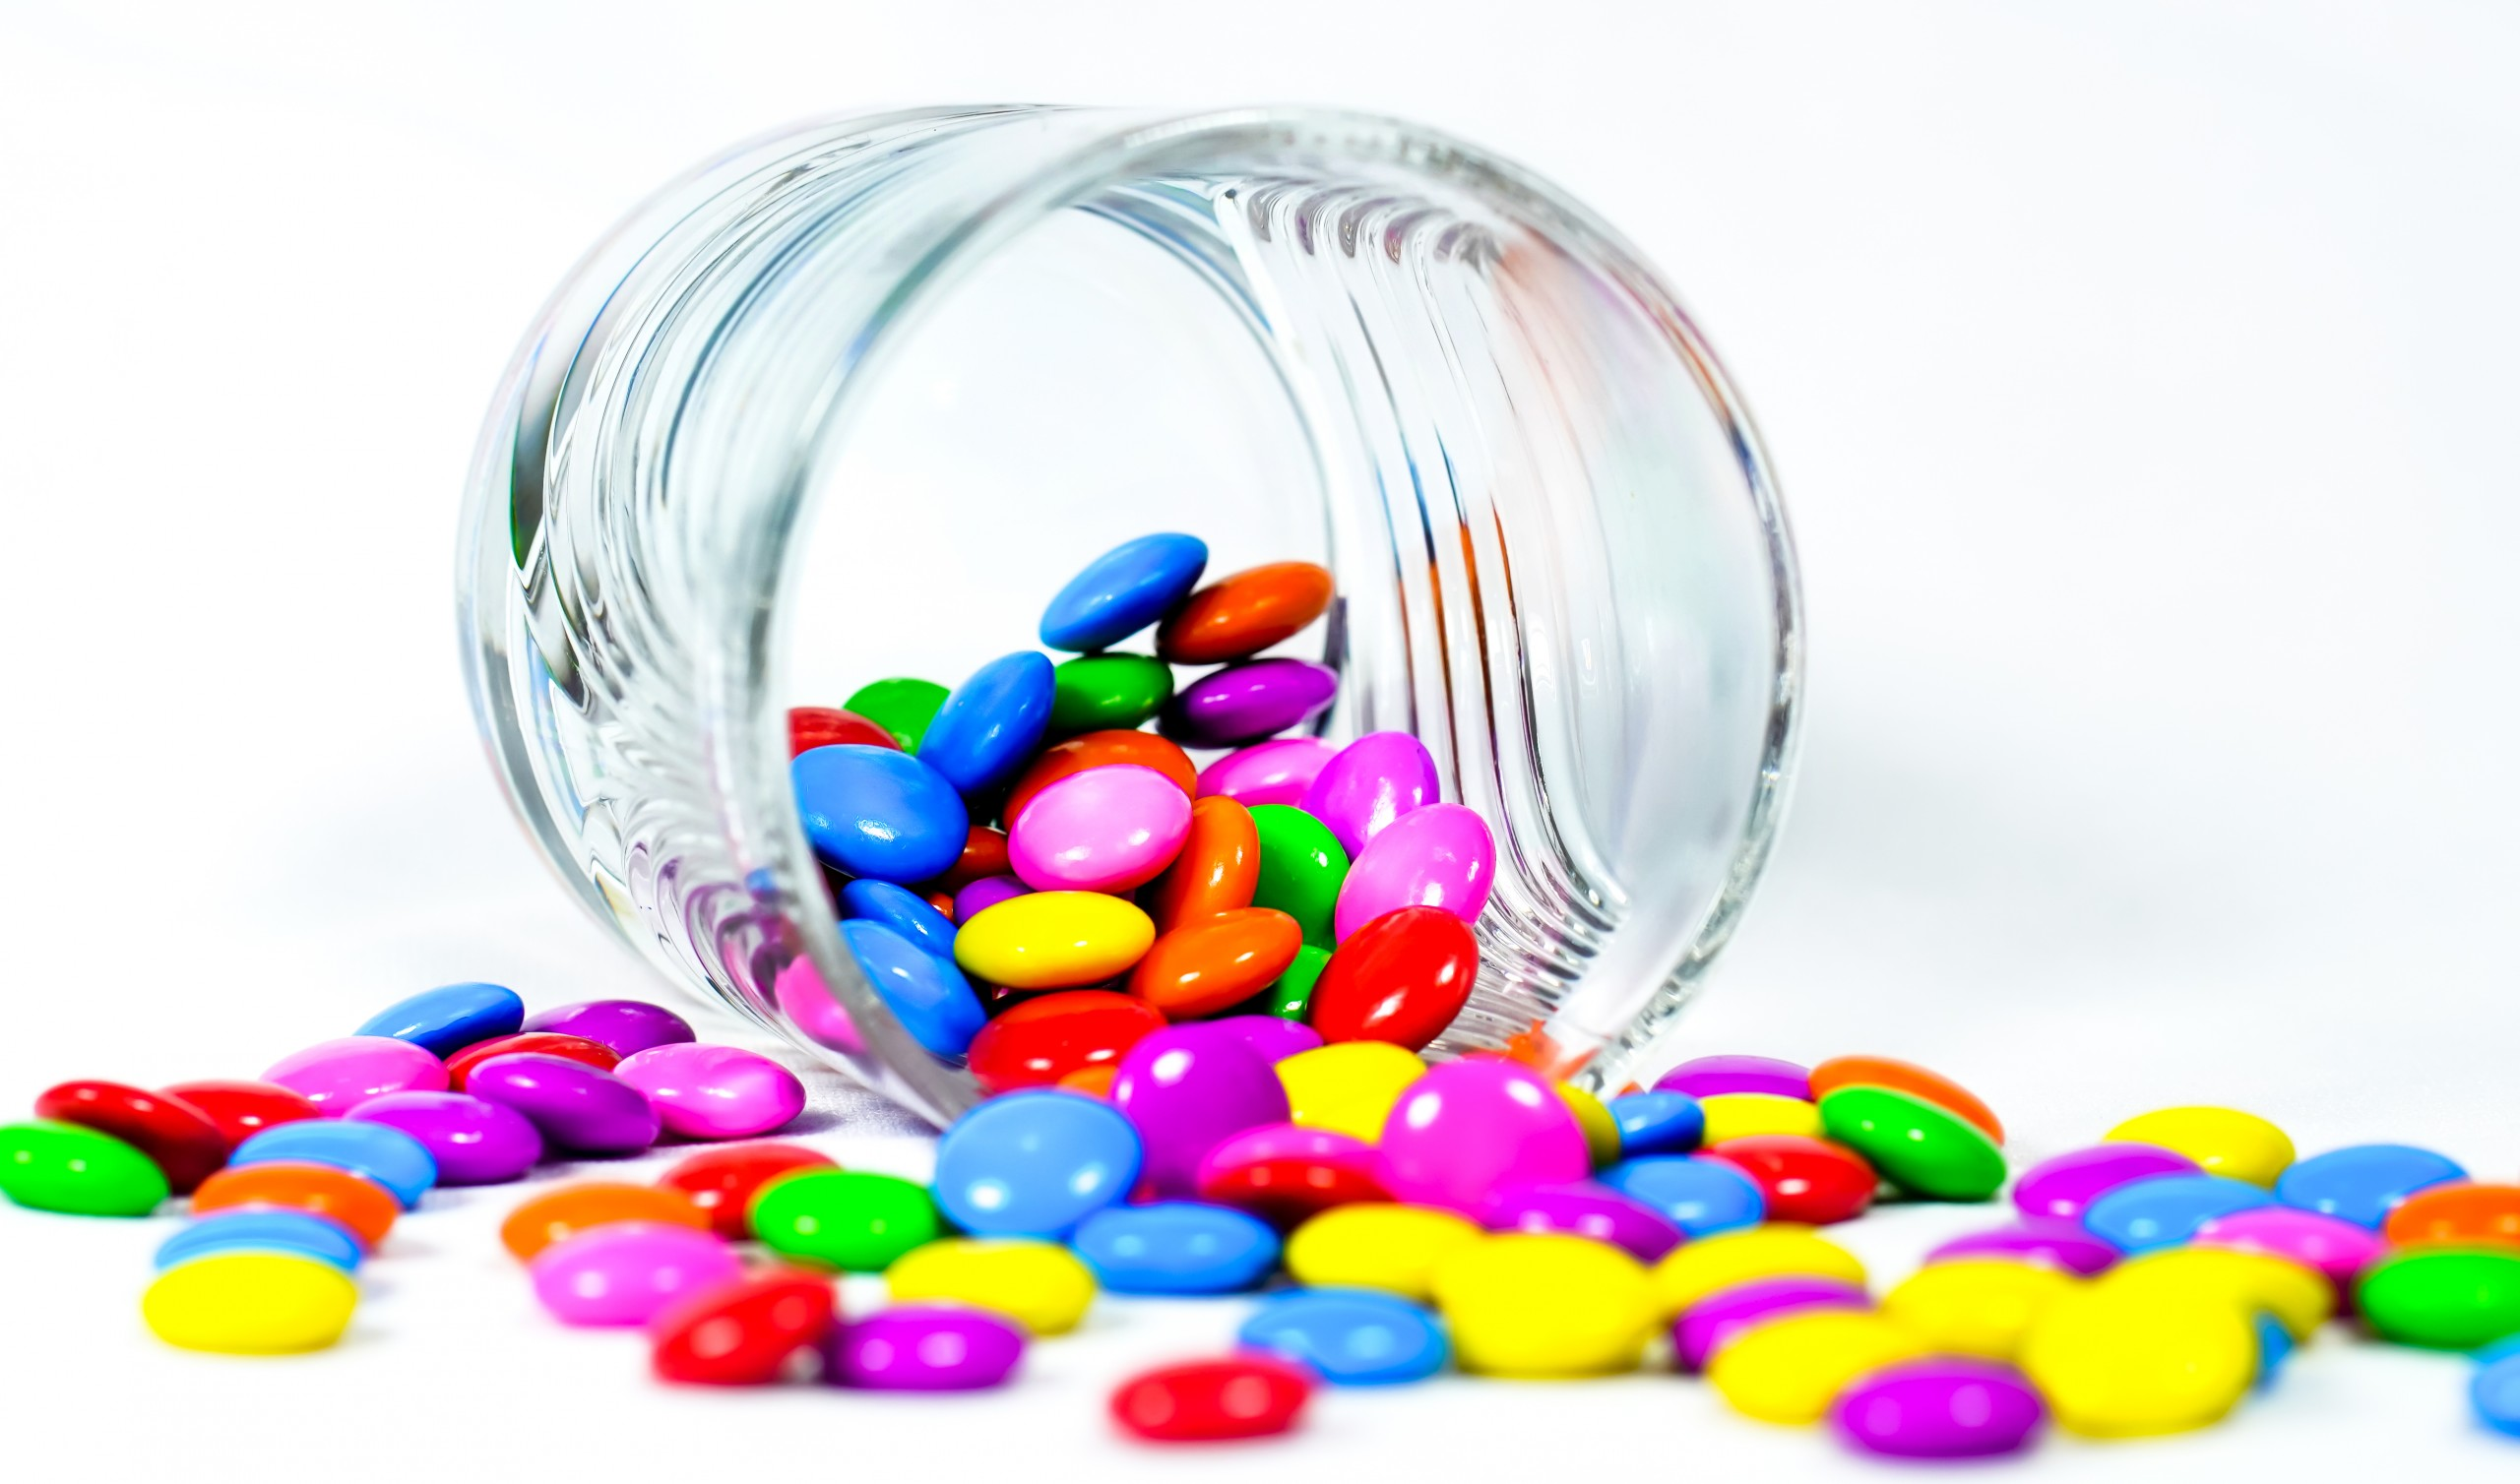 Candies Inside Glass